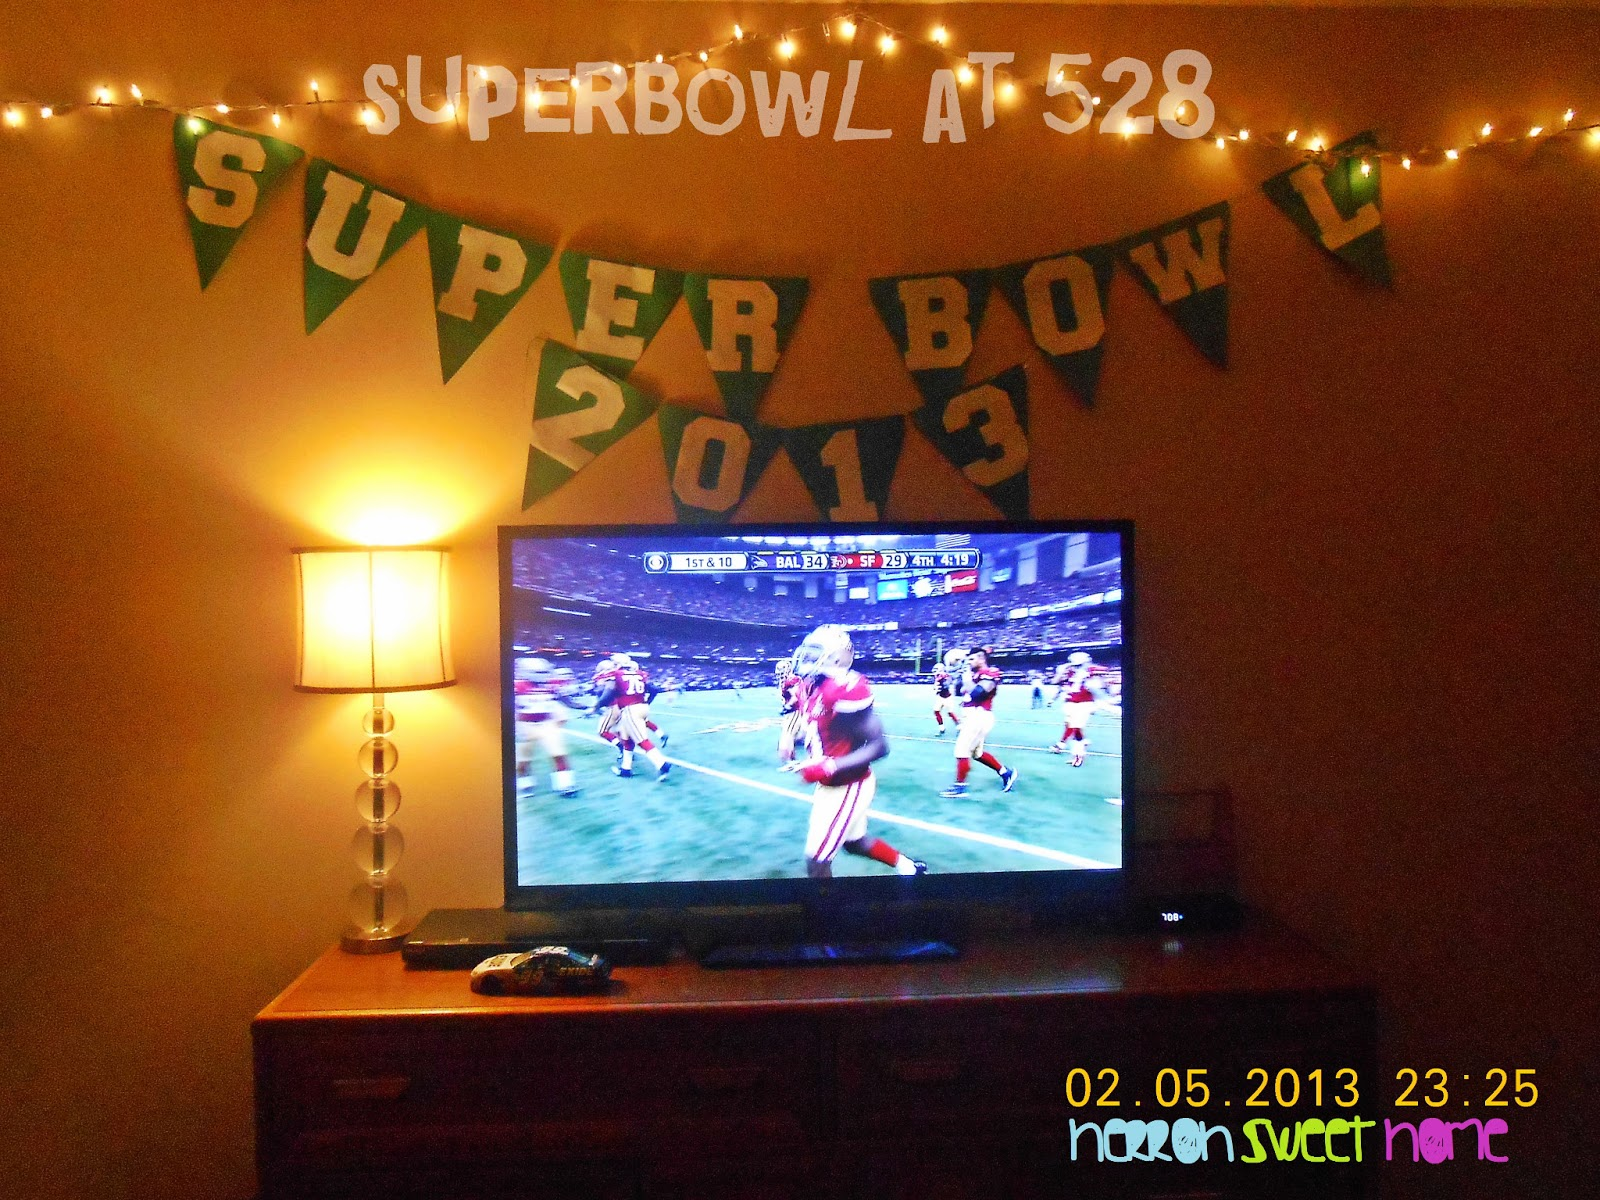 Superbowl Watch Party With Kids Melbourne Fl